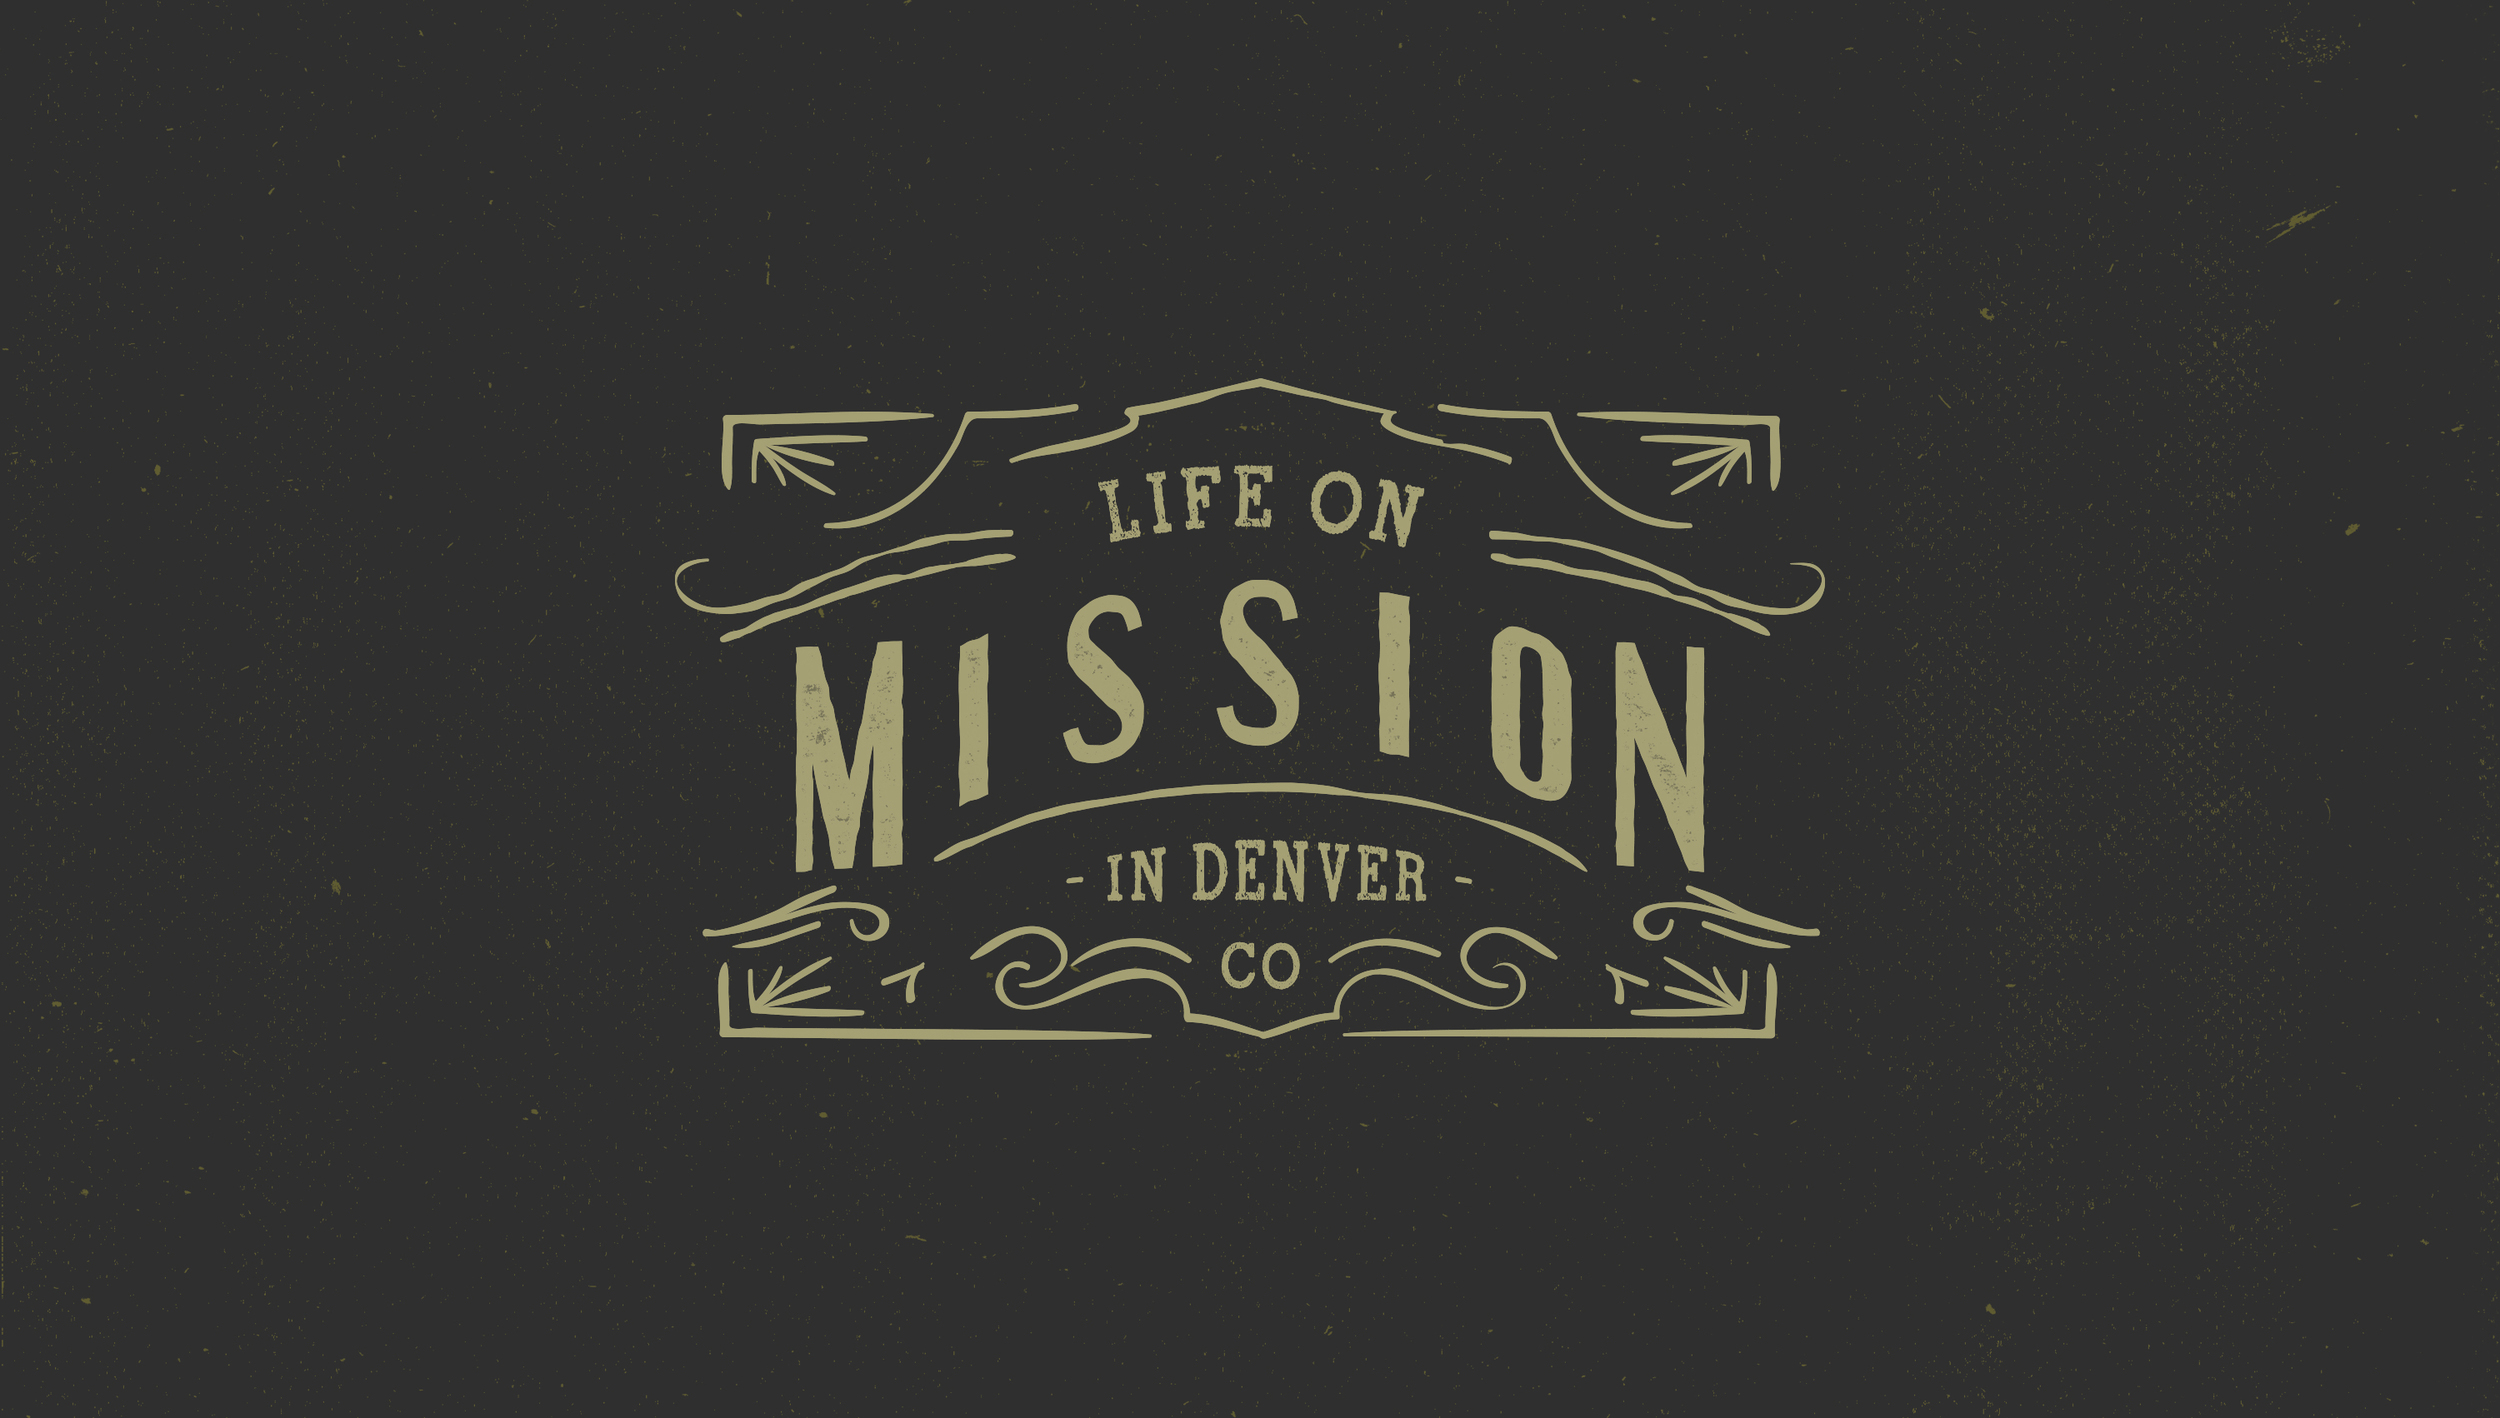 July 10 - August 7, 2016  Life on Mission